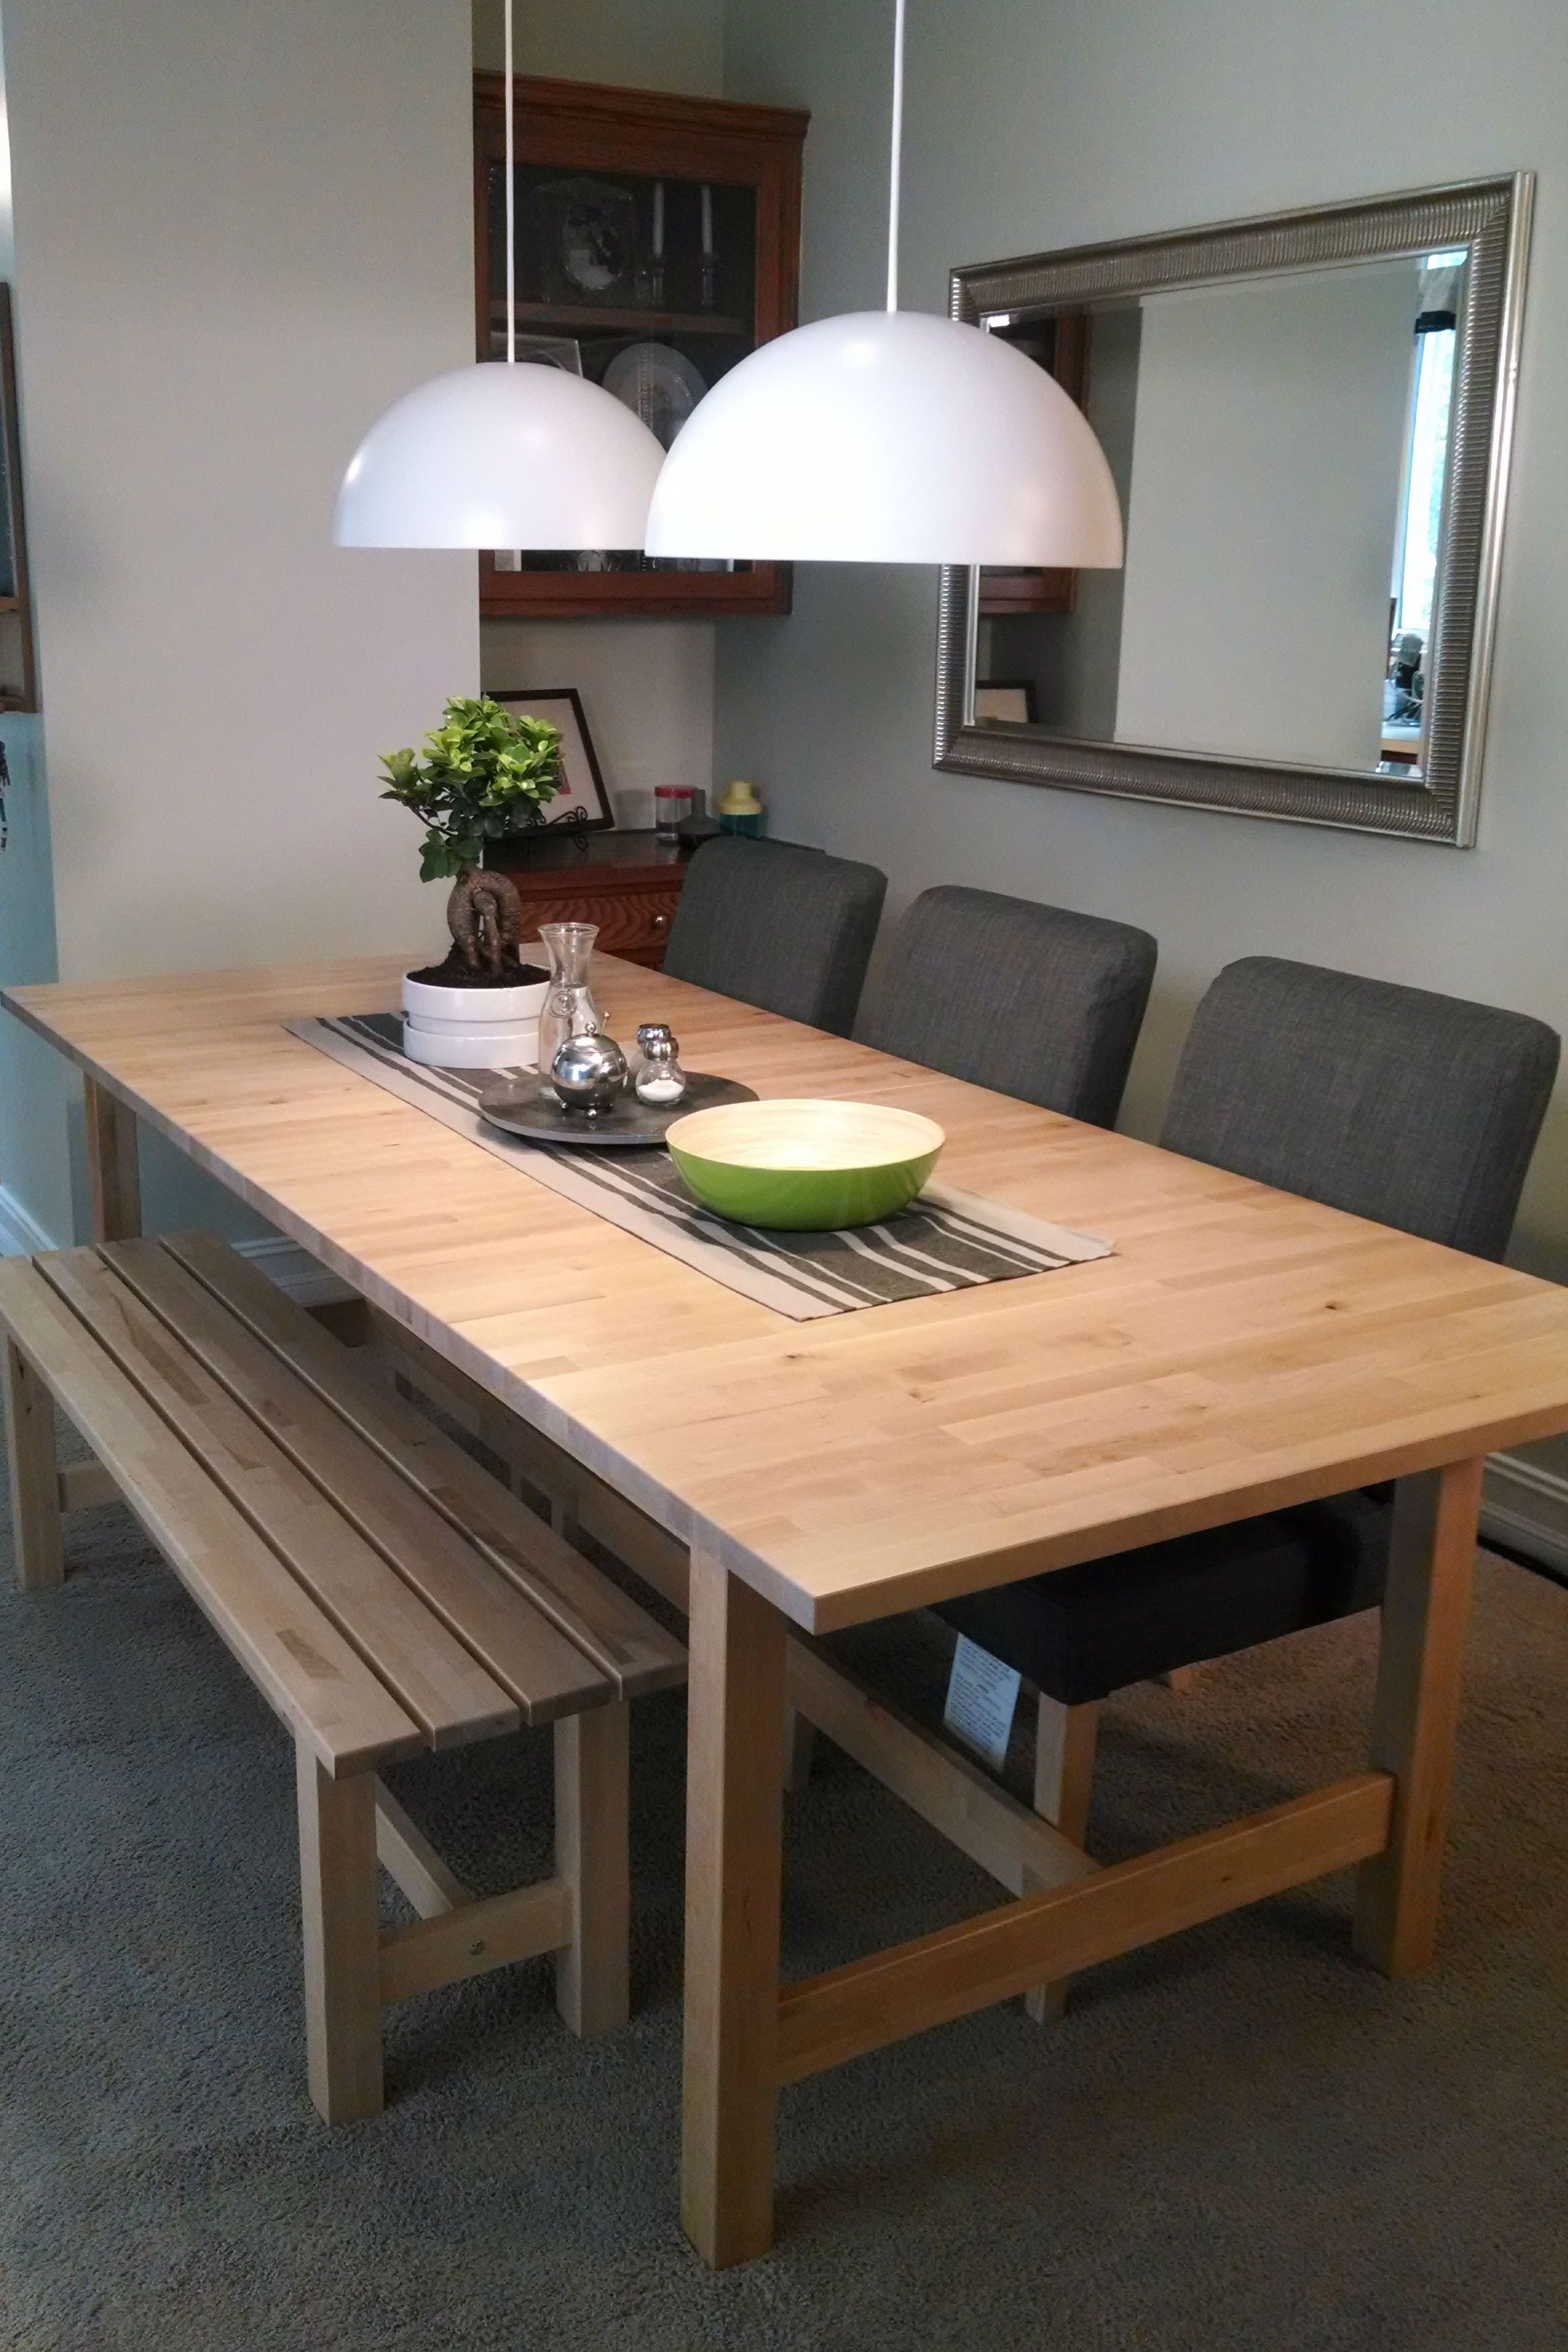 kitchen table with benches IKEA Glass clear glass Dining Table Bench